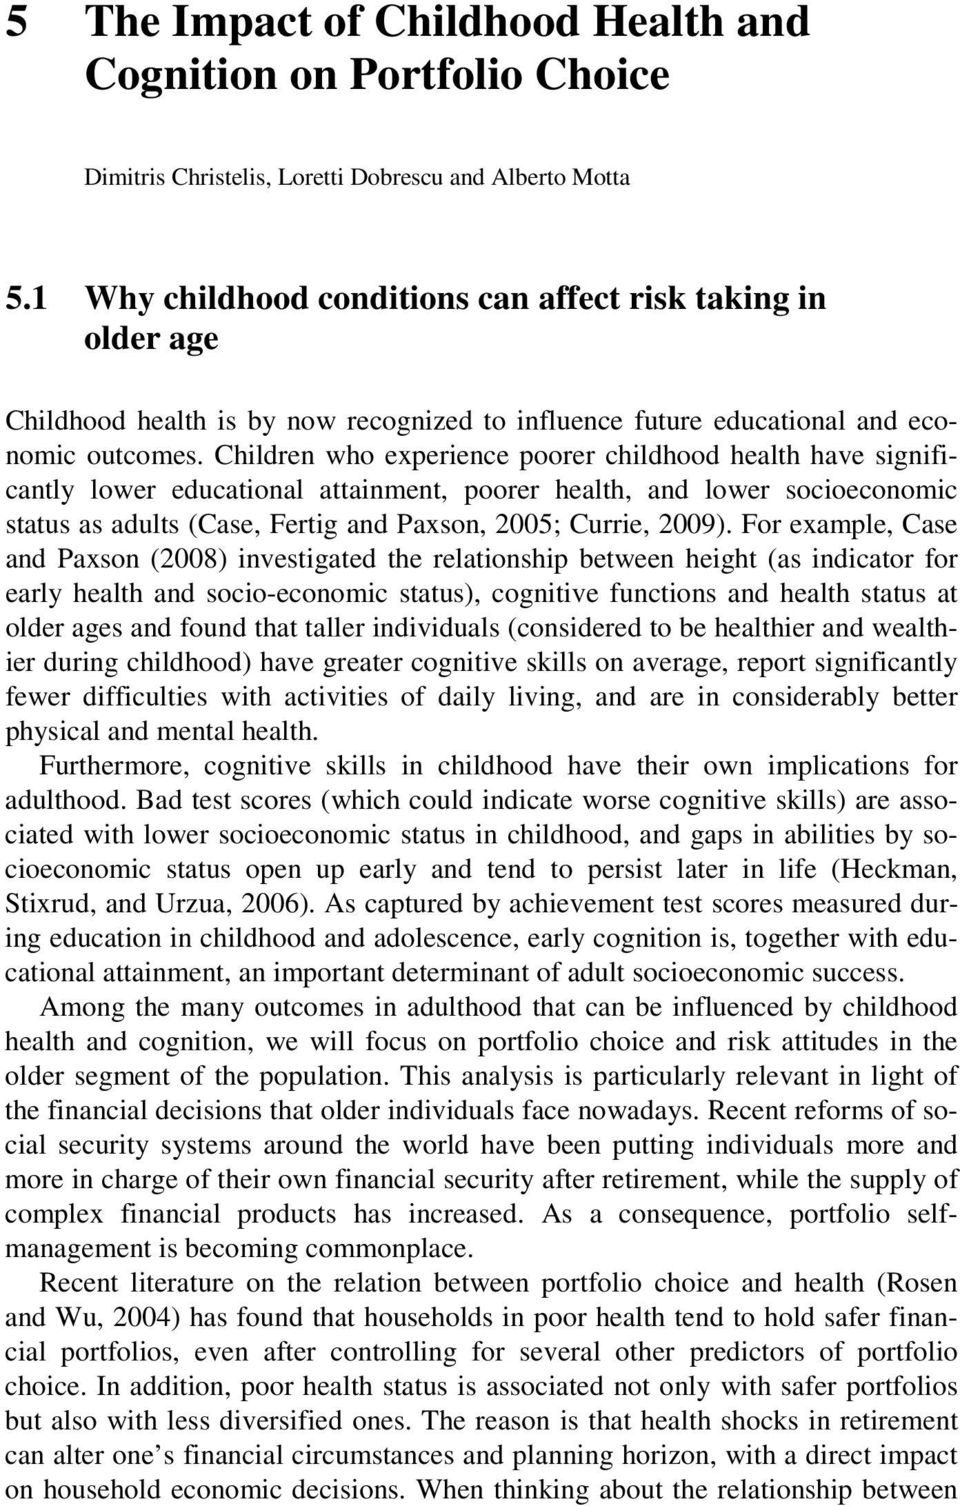 Children who experience poorer childhood health have significantly lower educational attainment, poorer health, and lower socioeconomic status as adults (Case, Fertig and Paxson, 2005; Currie, 2009).